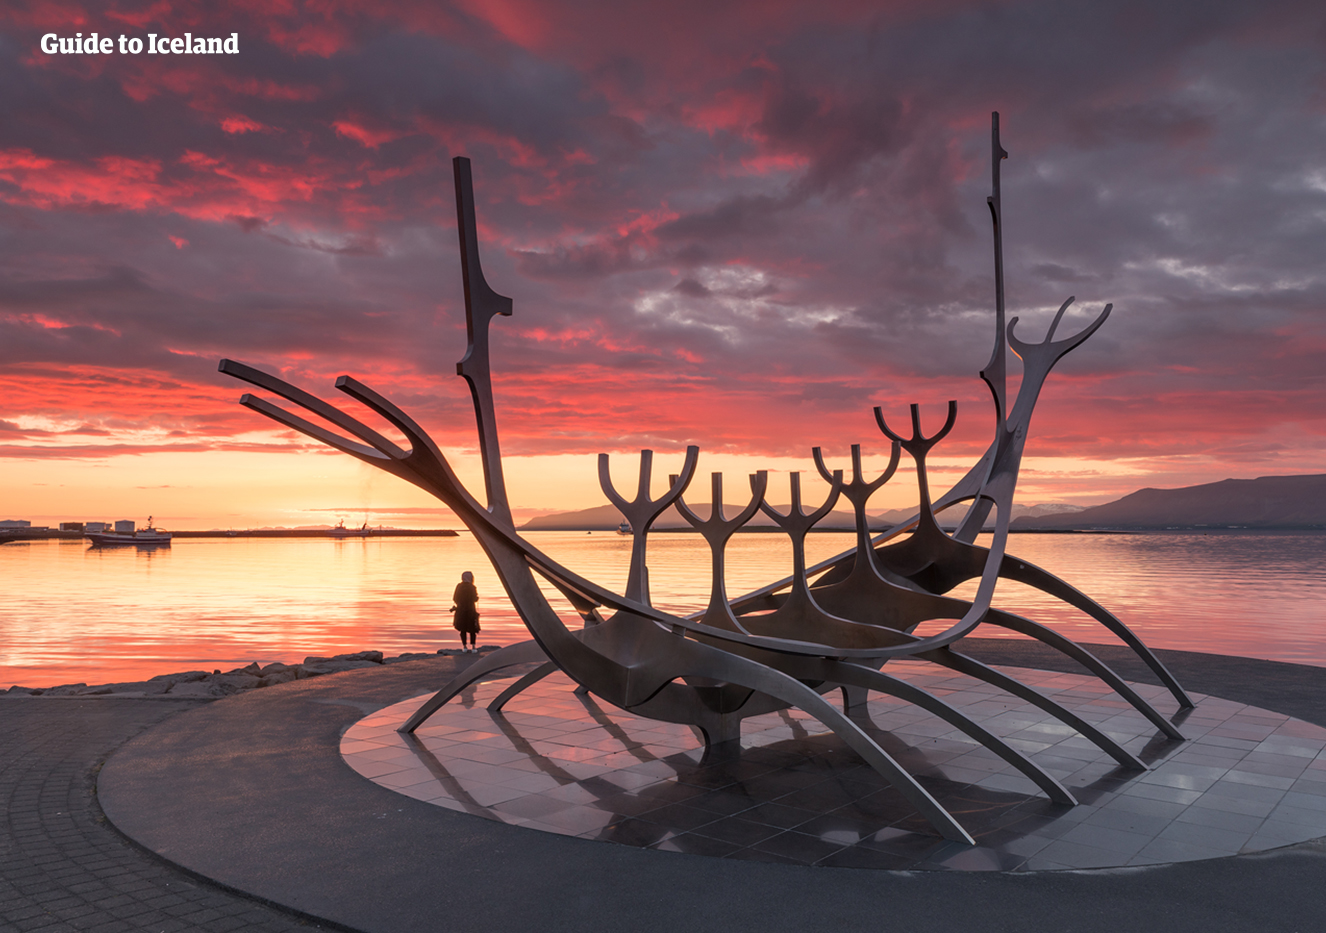 The Sun Voyager in Reykjavík sits before a still sea on a crisp and clear winter day.